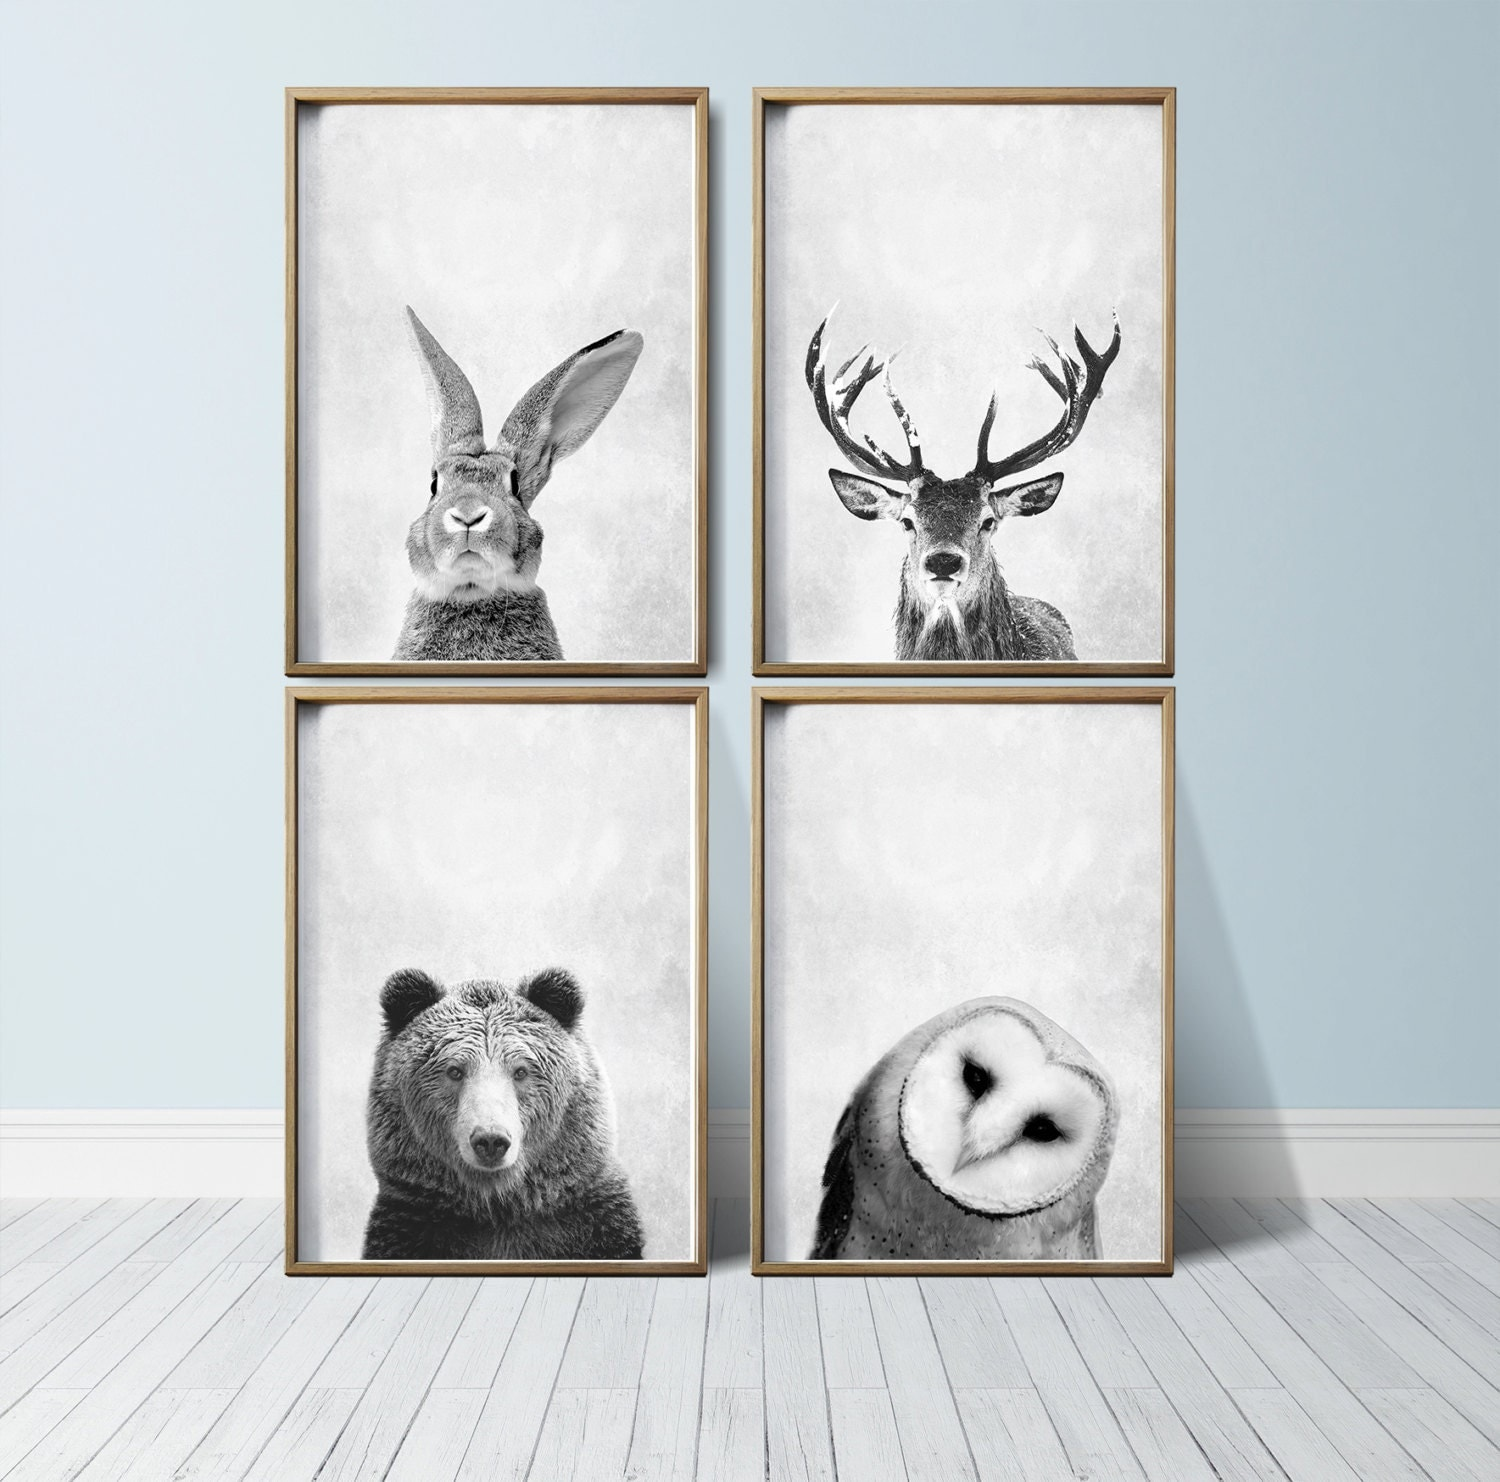 Wall Art Decor Nursery : Nursery wall art animal print woodland decor